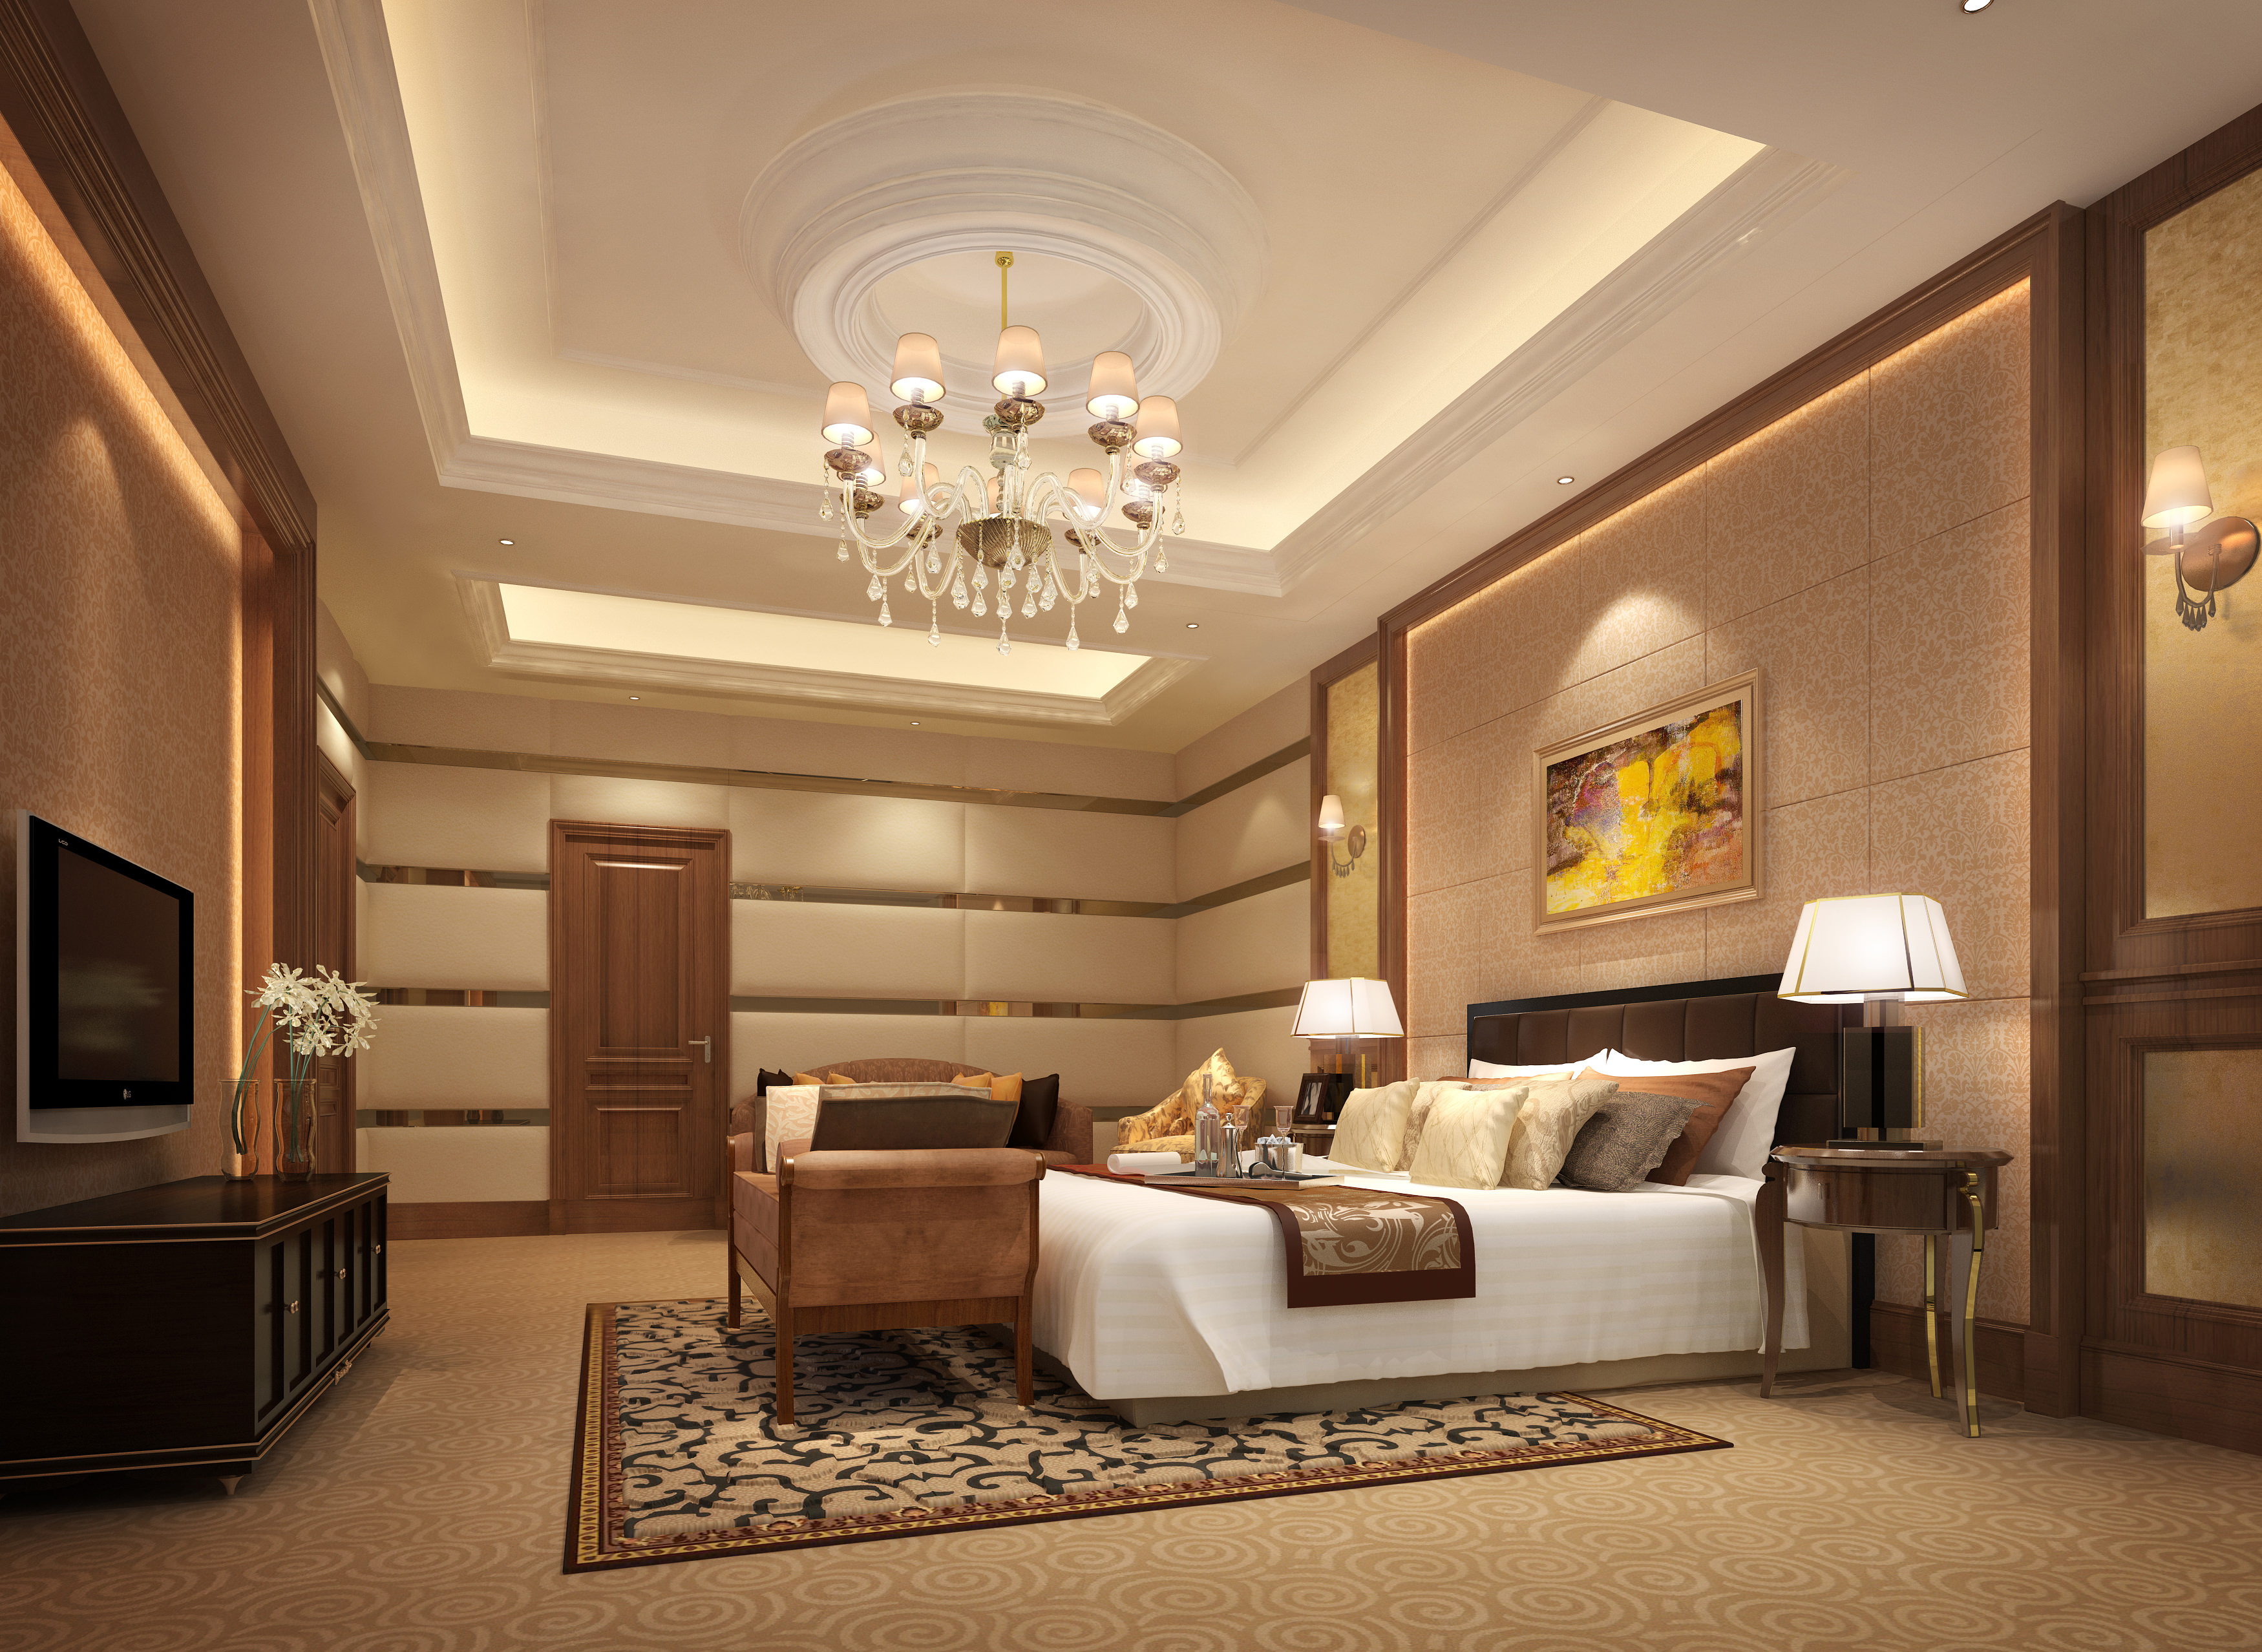 Living Room And Bedroom Collection 11 3D Model MAX ... on Model Bedroom Design  id=46835